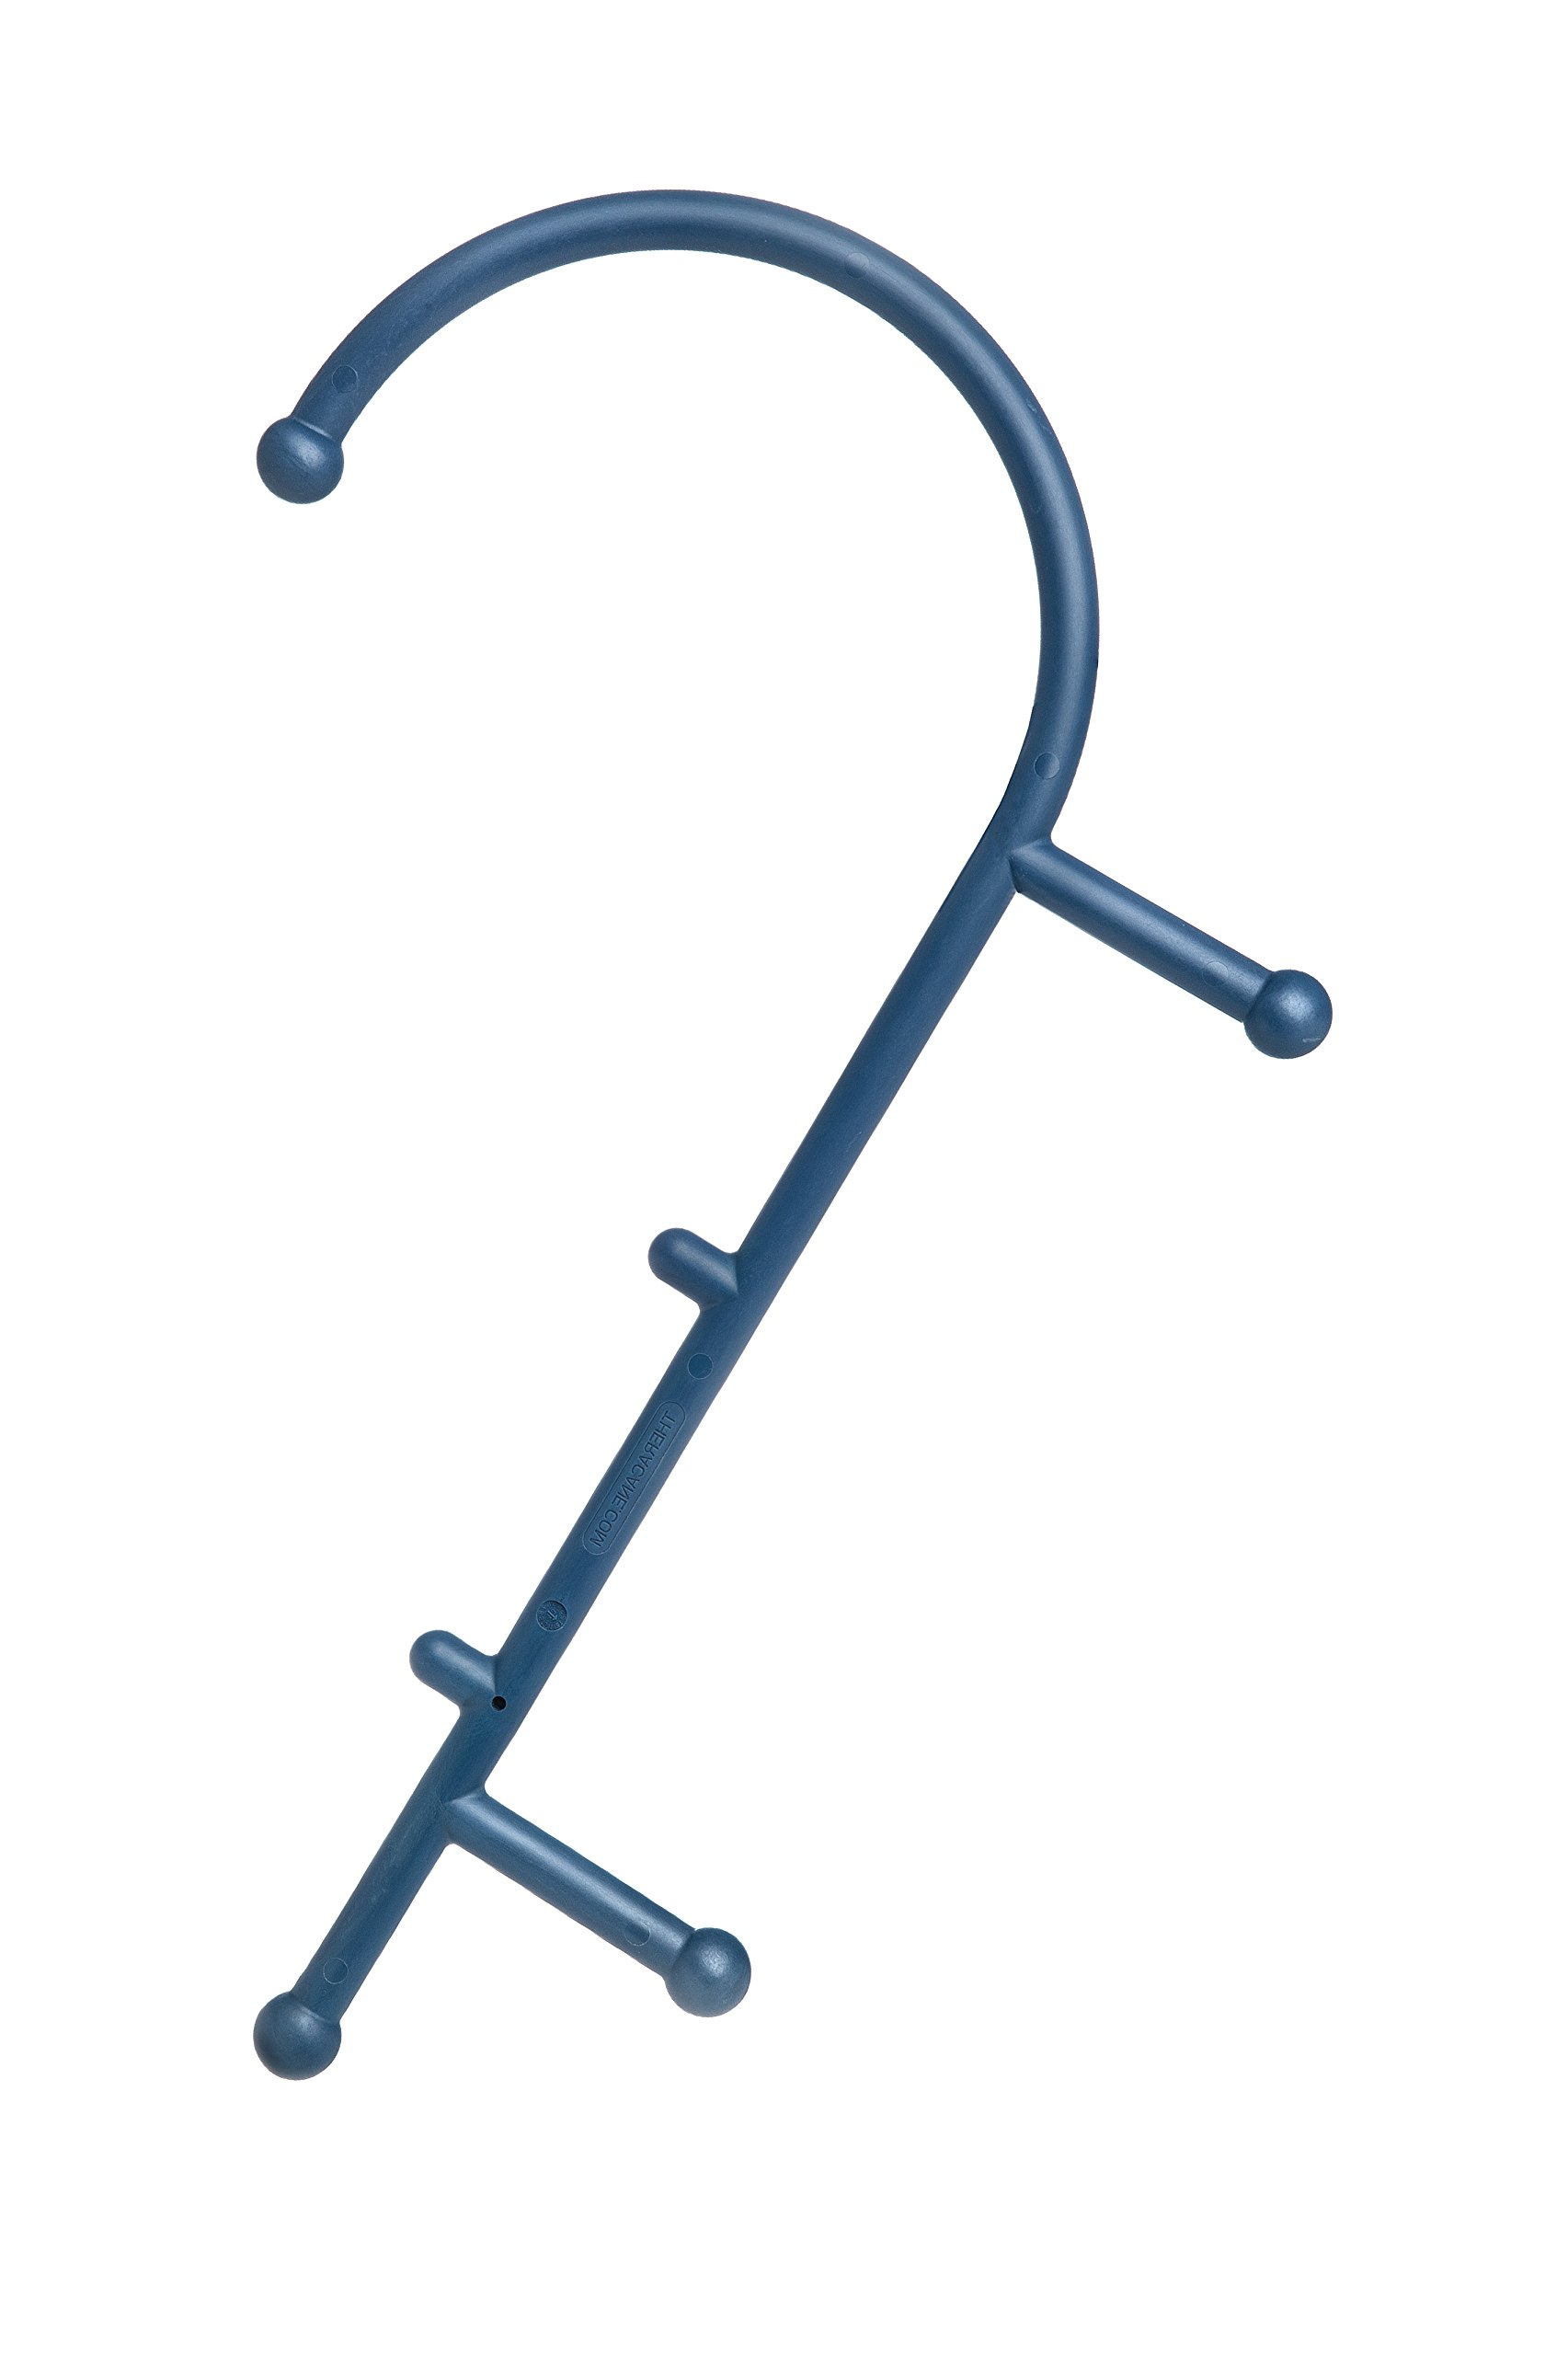 Thera Cane Massager (Blue) by Thera Cane